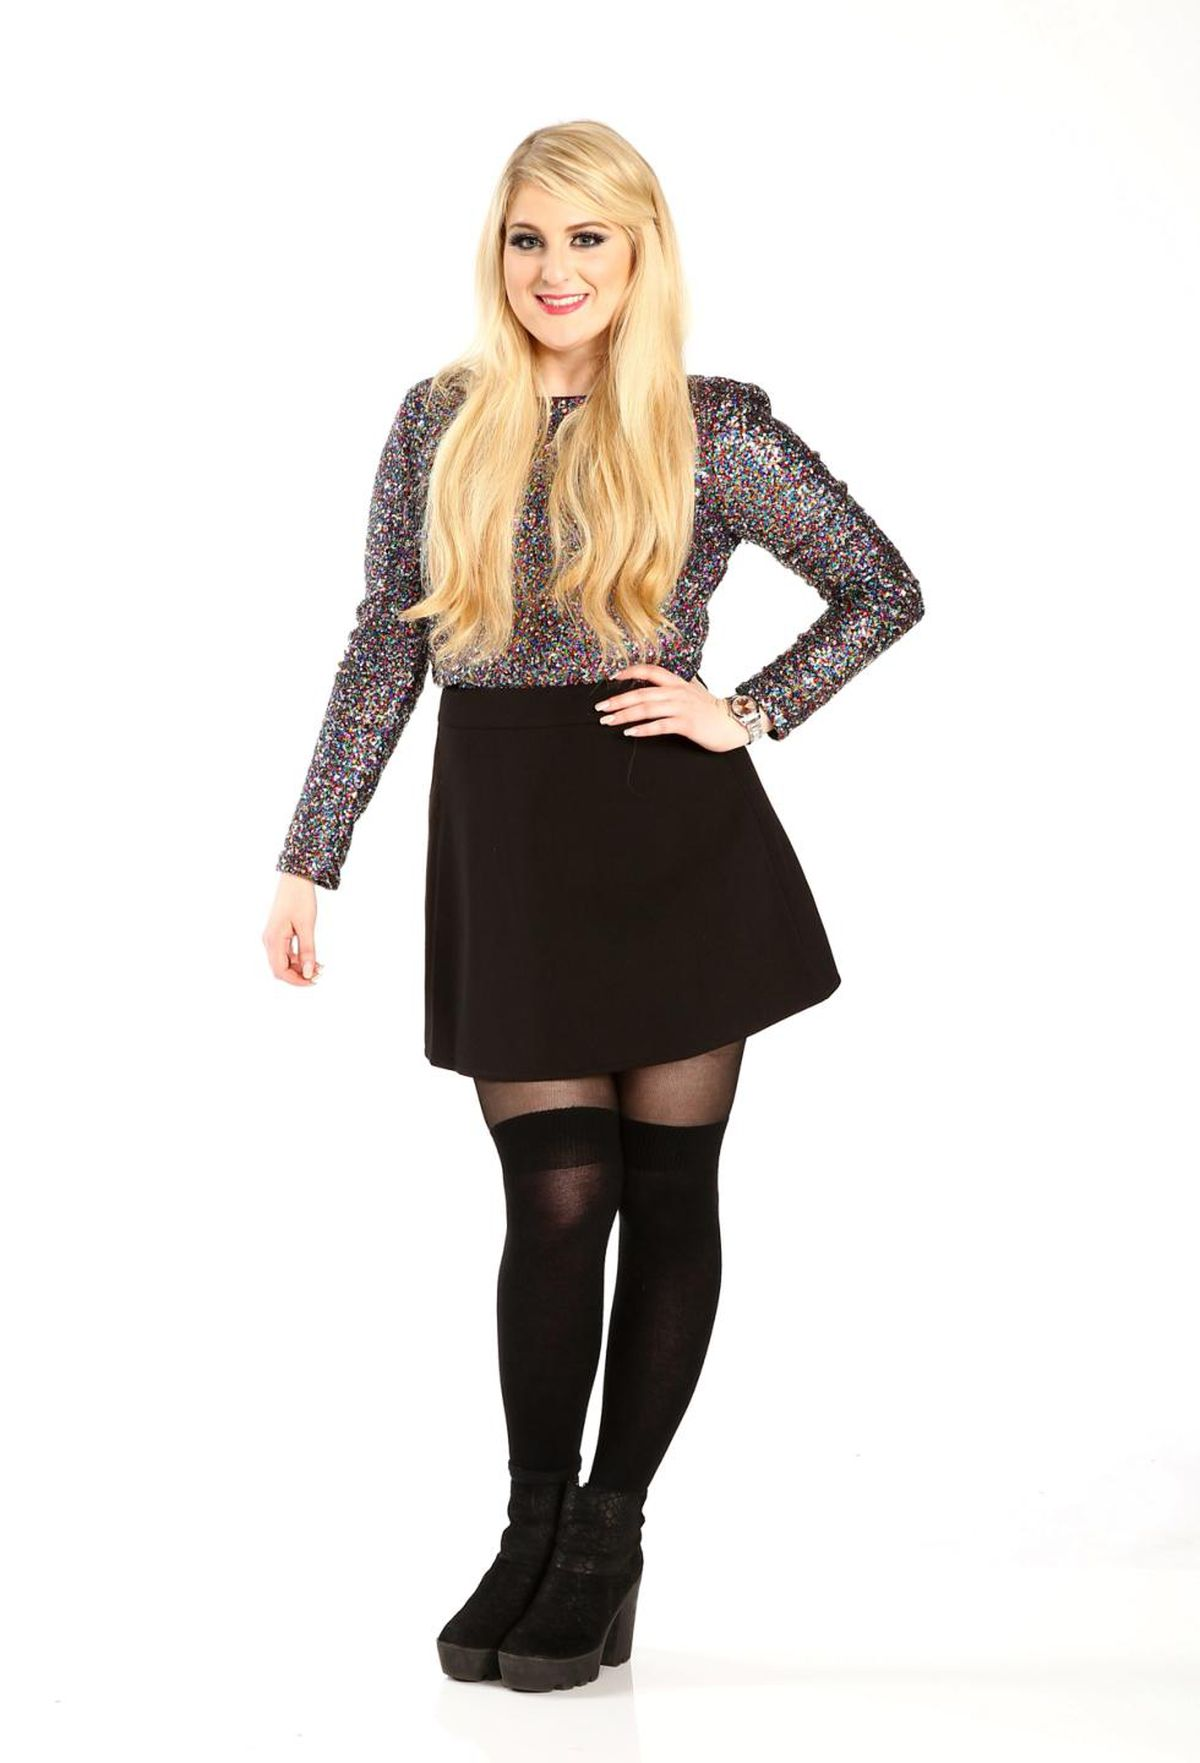 Gossip Girl Wallpapers Hd Music Review Meghan Trainor S Title Gets Three Stars